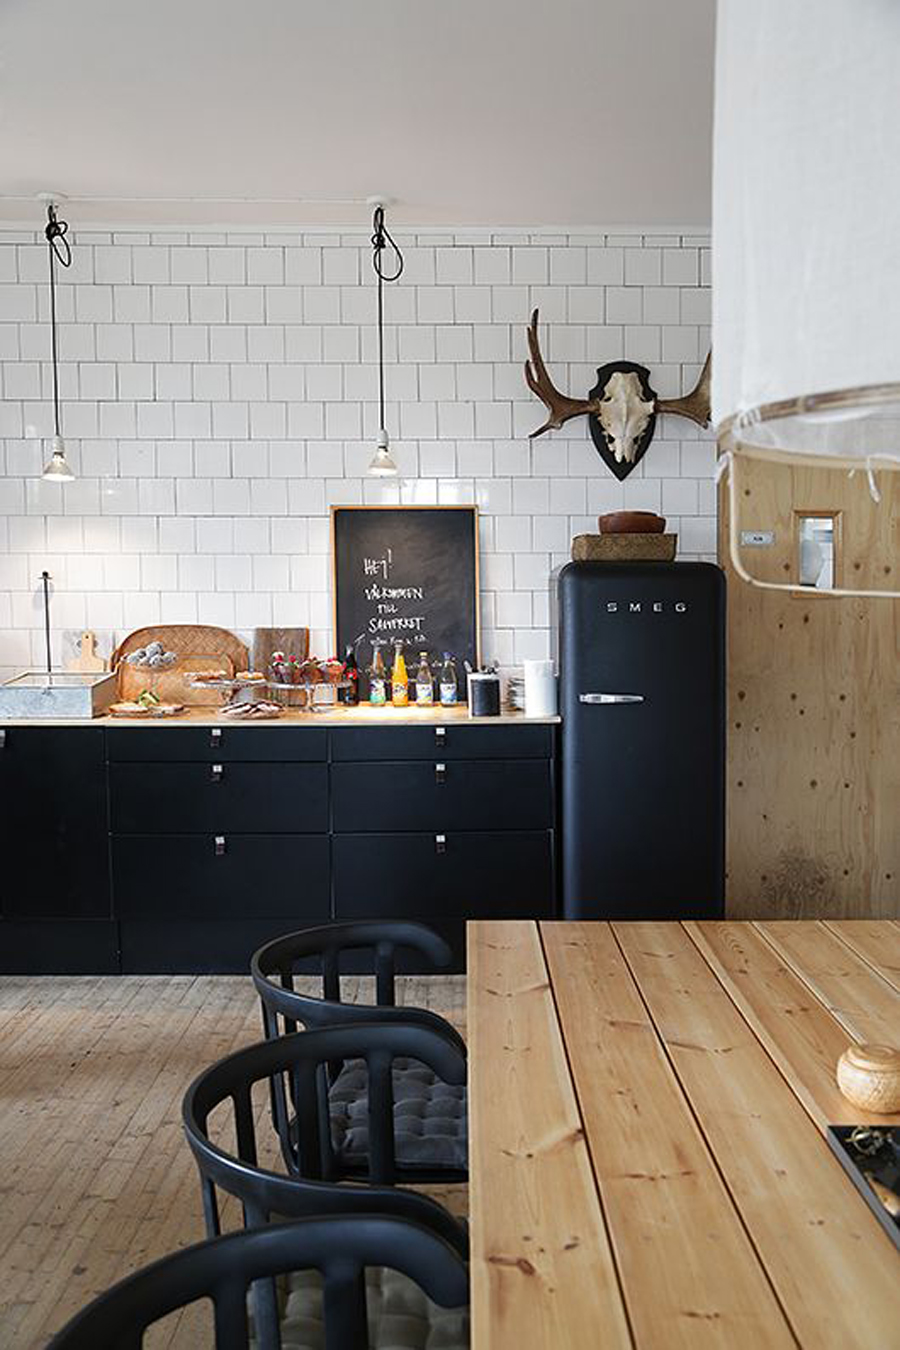 ... Fascinating Scandinavian kitchen with a dash of black